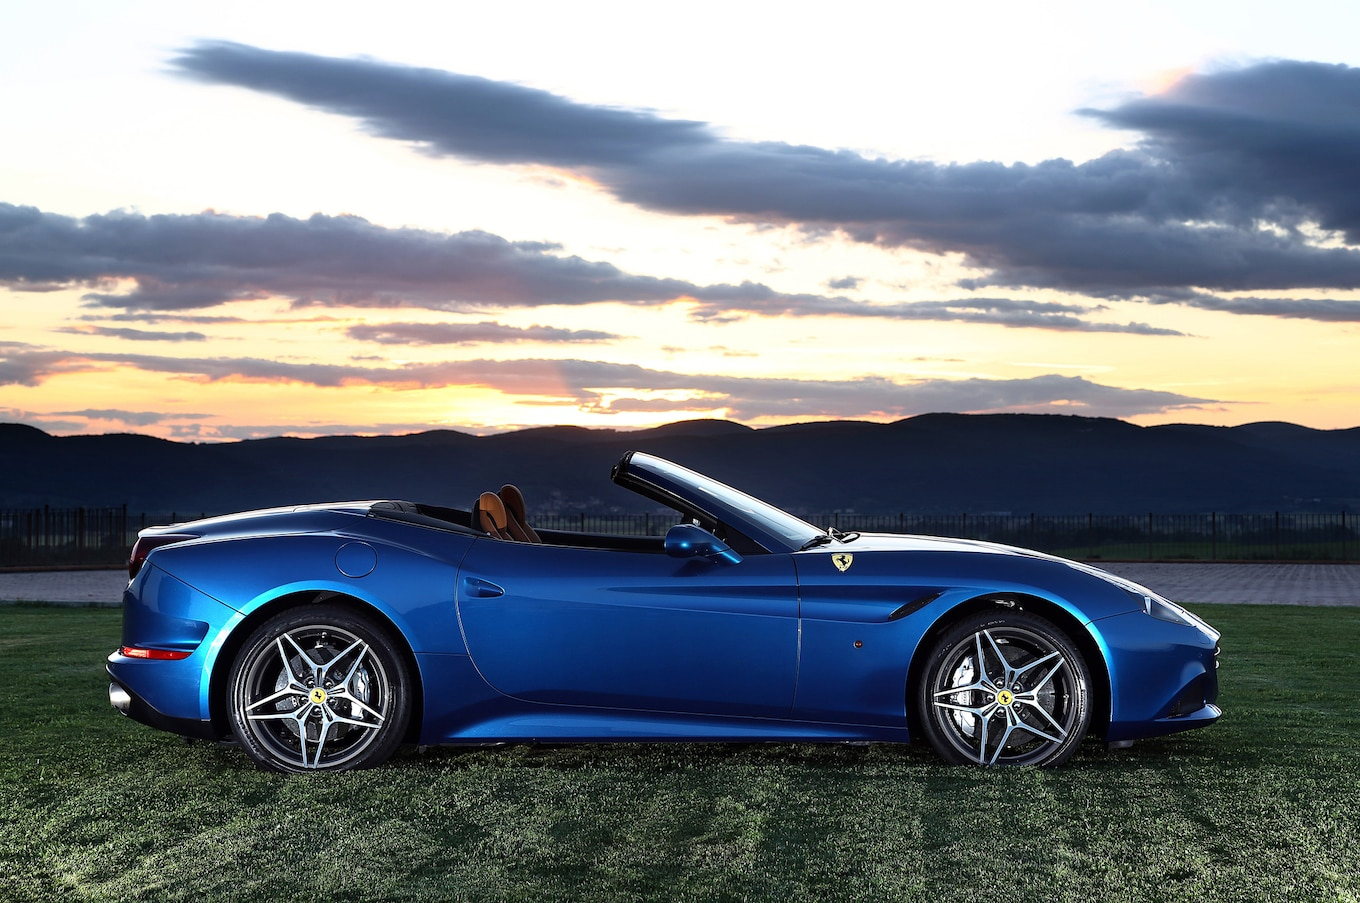 2015 Ferrari California Reviews - Research California ...